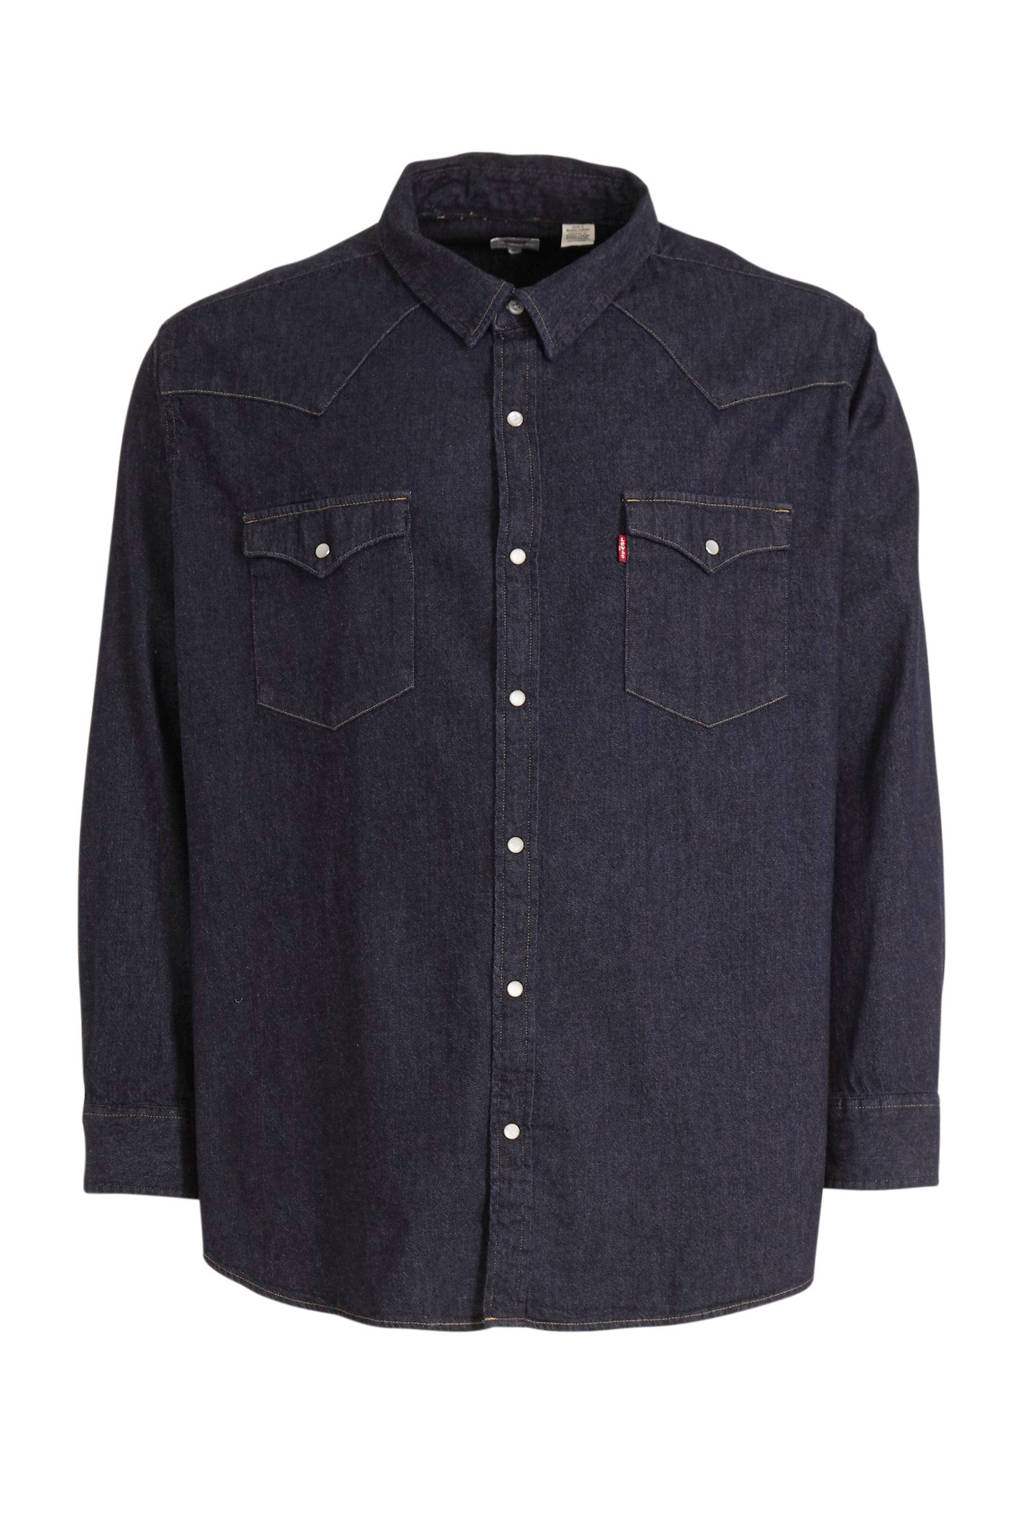 Levi's Big and Tall regular fit overhemd donkerblauw, Donkerblauw